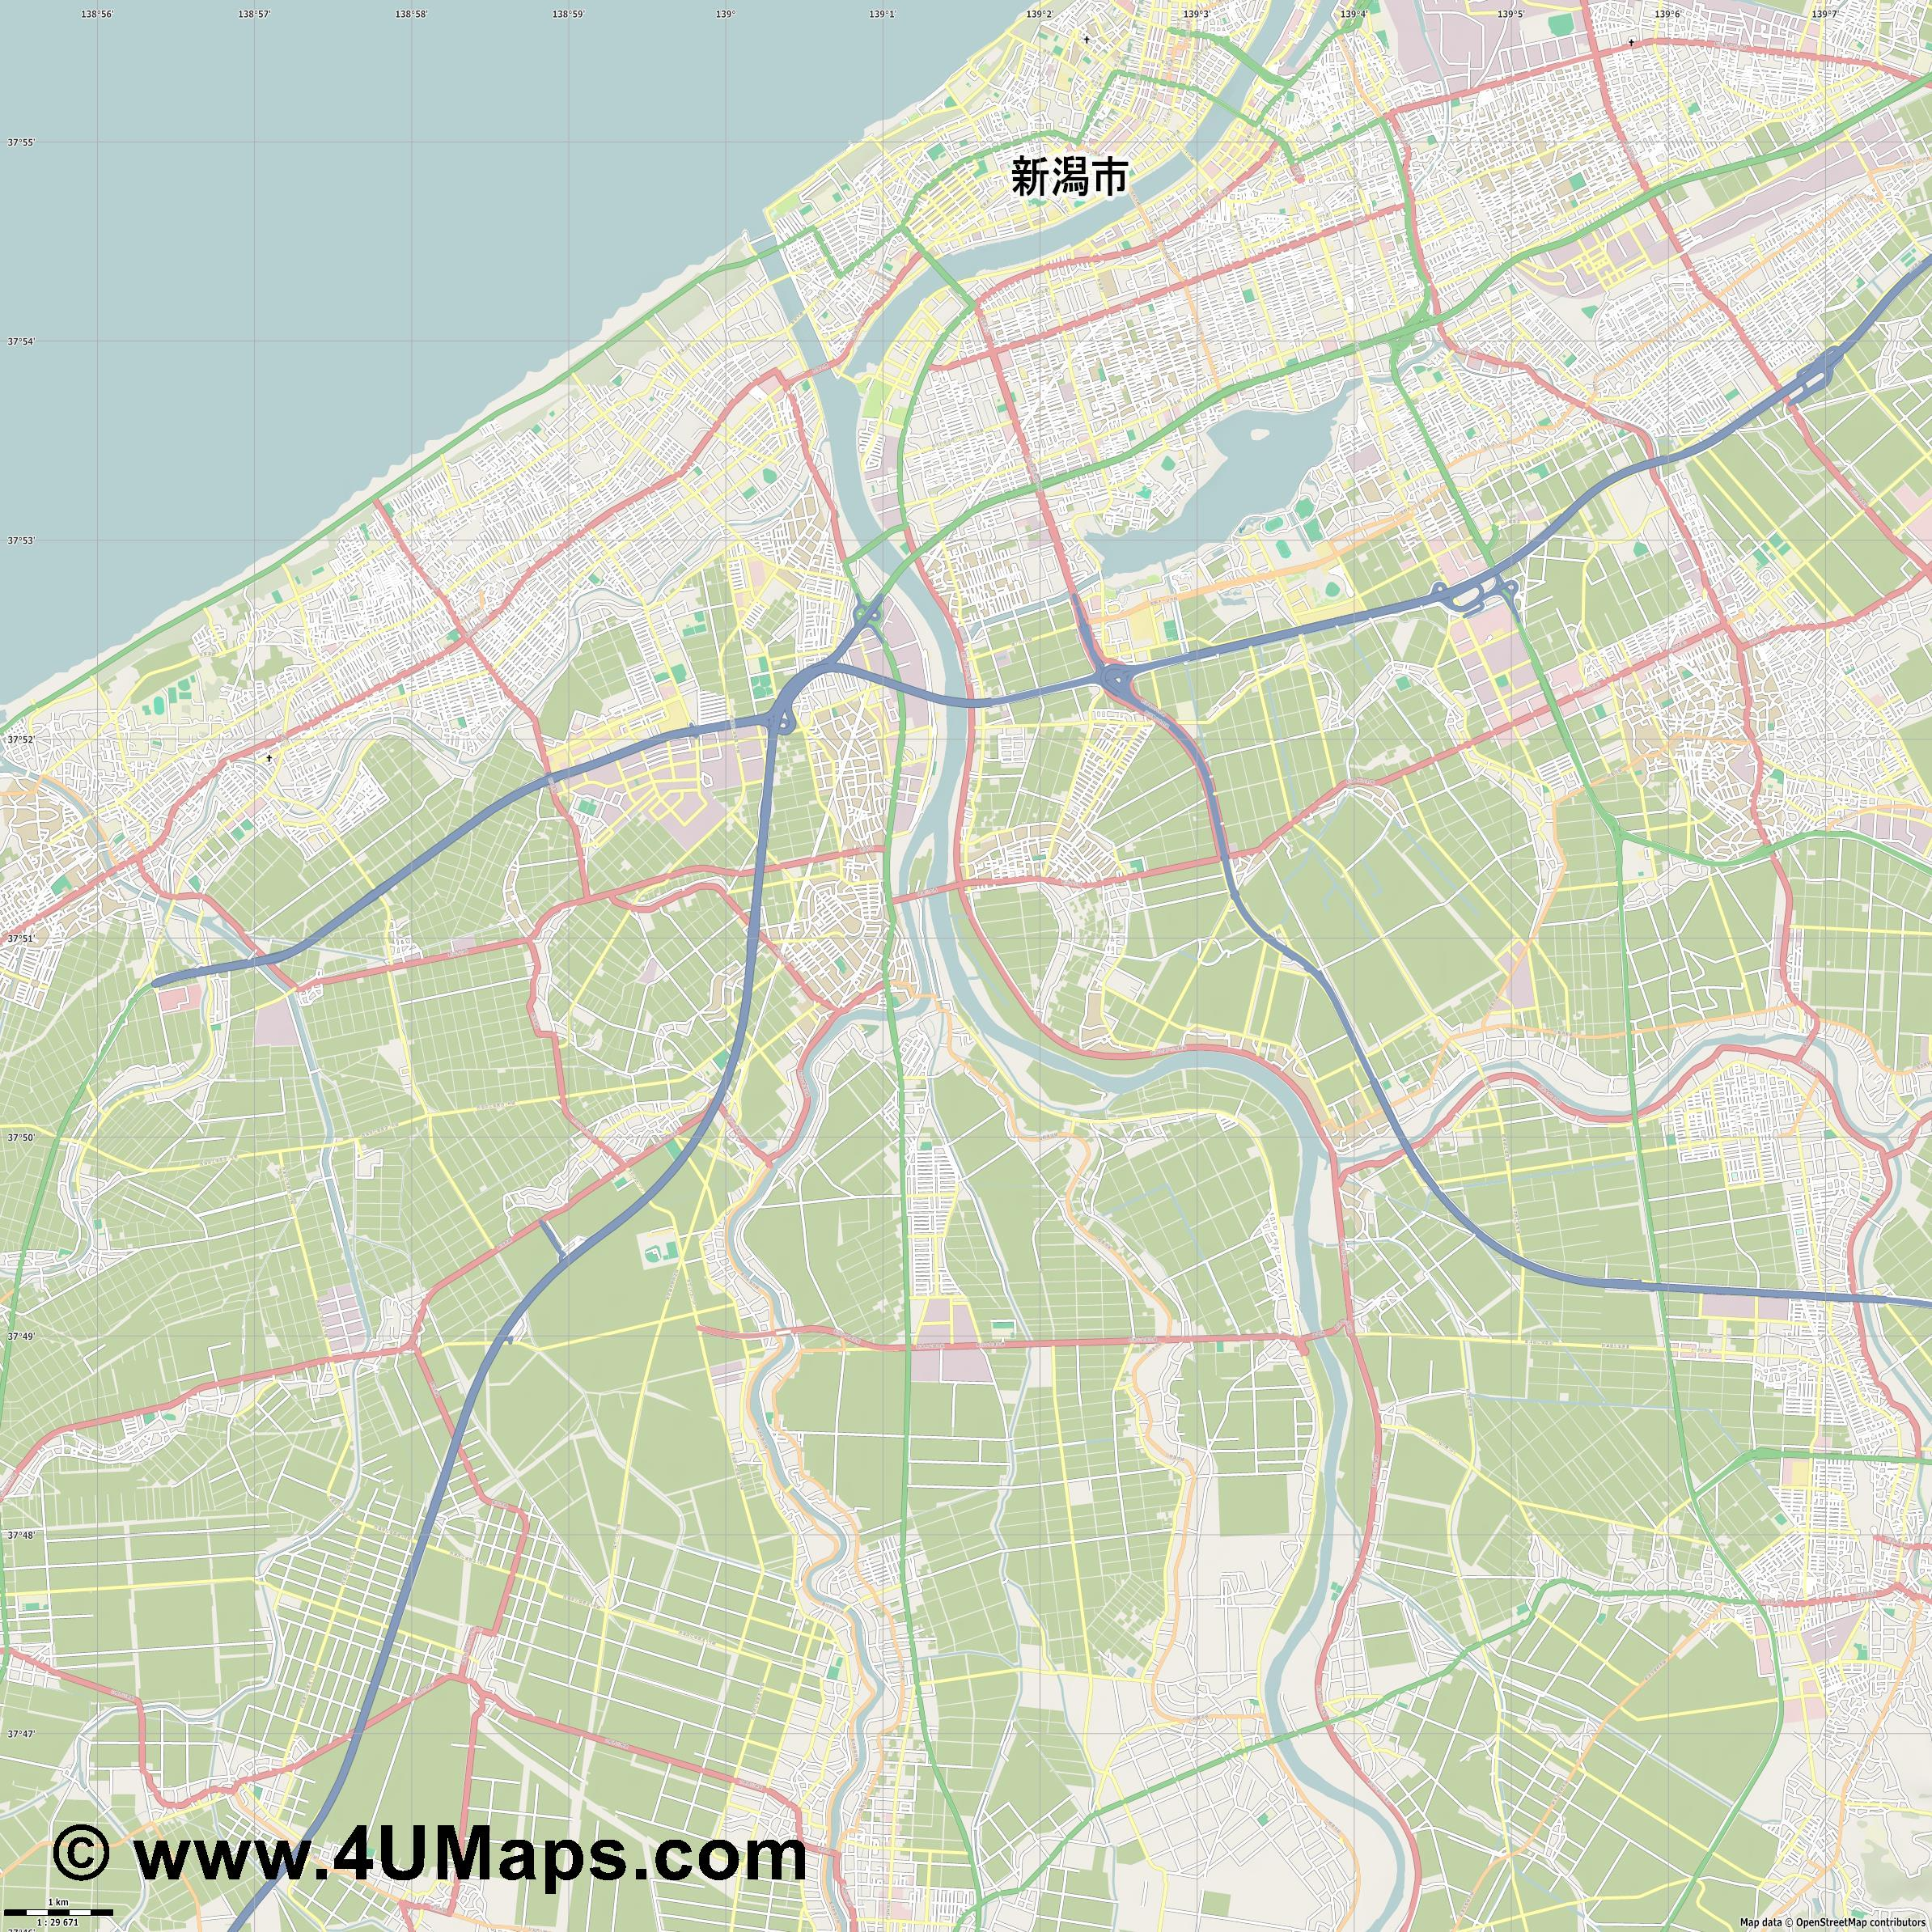 新潟市  Niigata   jpg high detail, large area preview vector city map